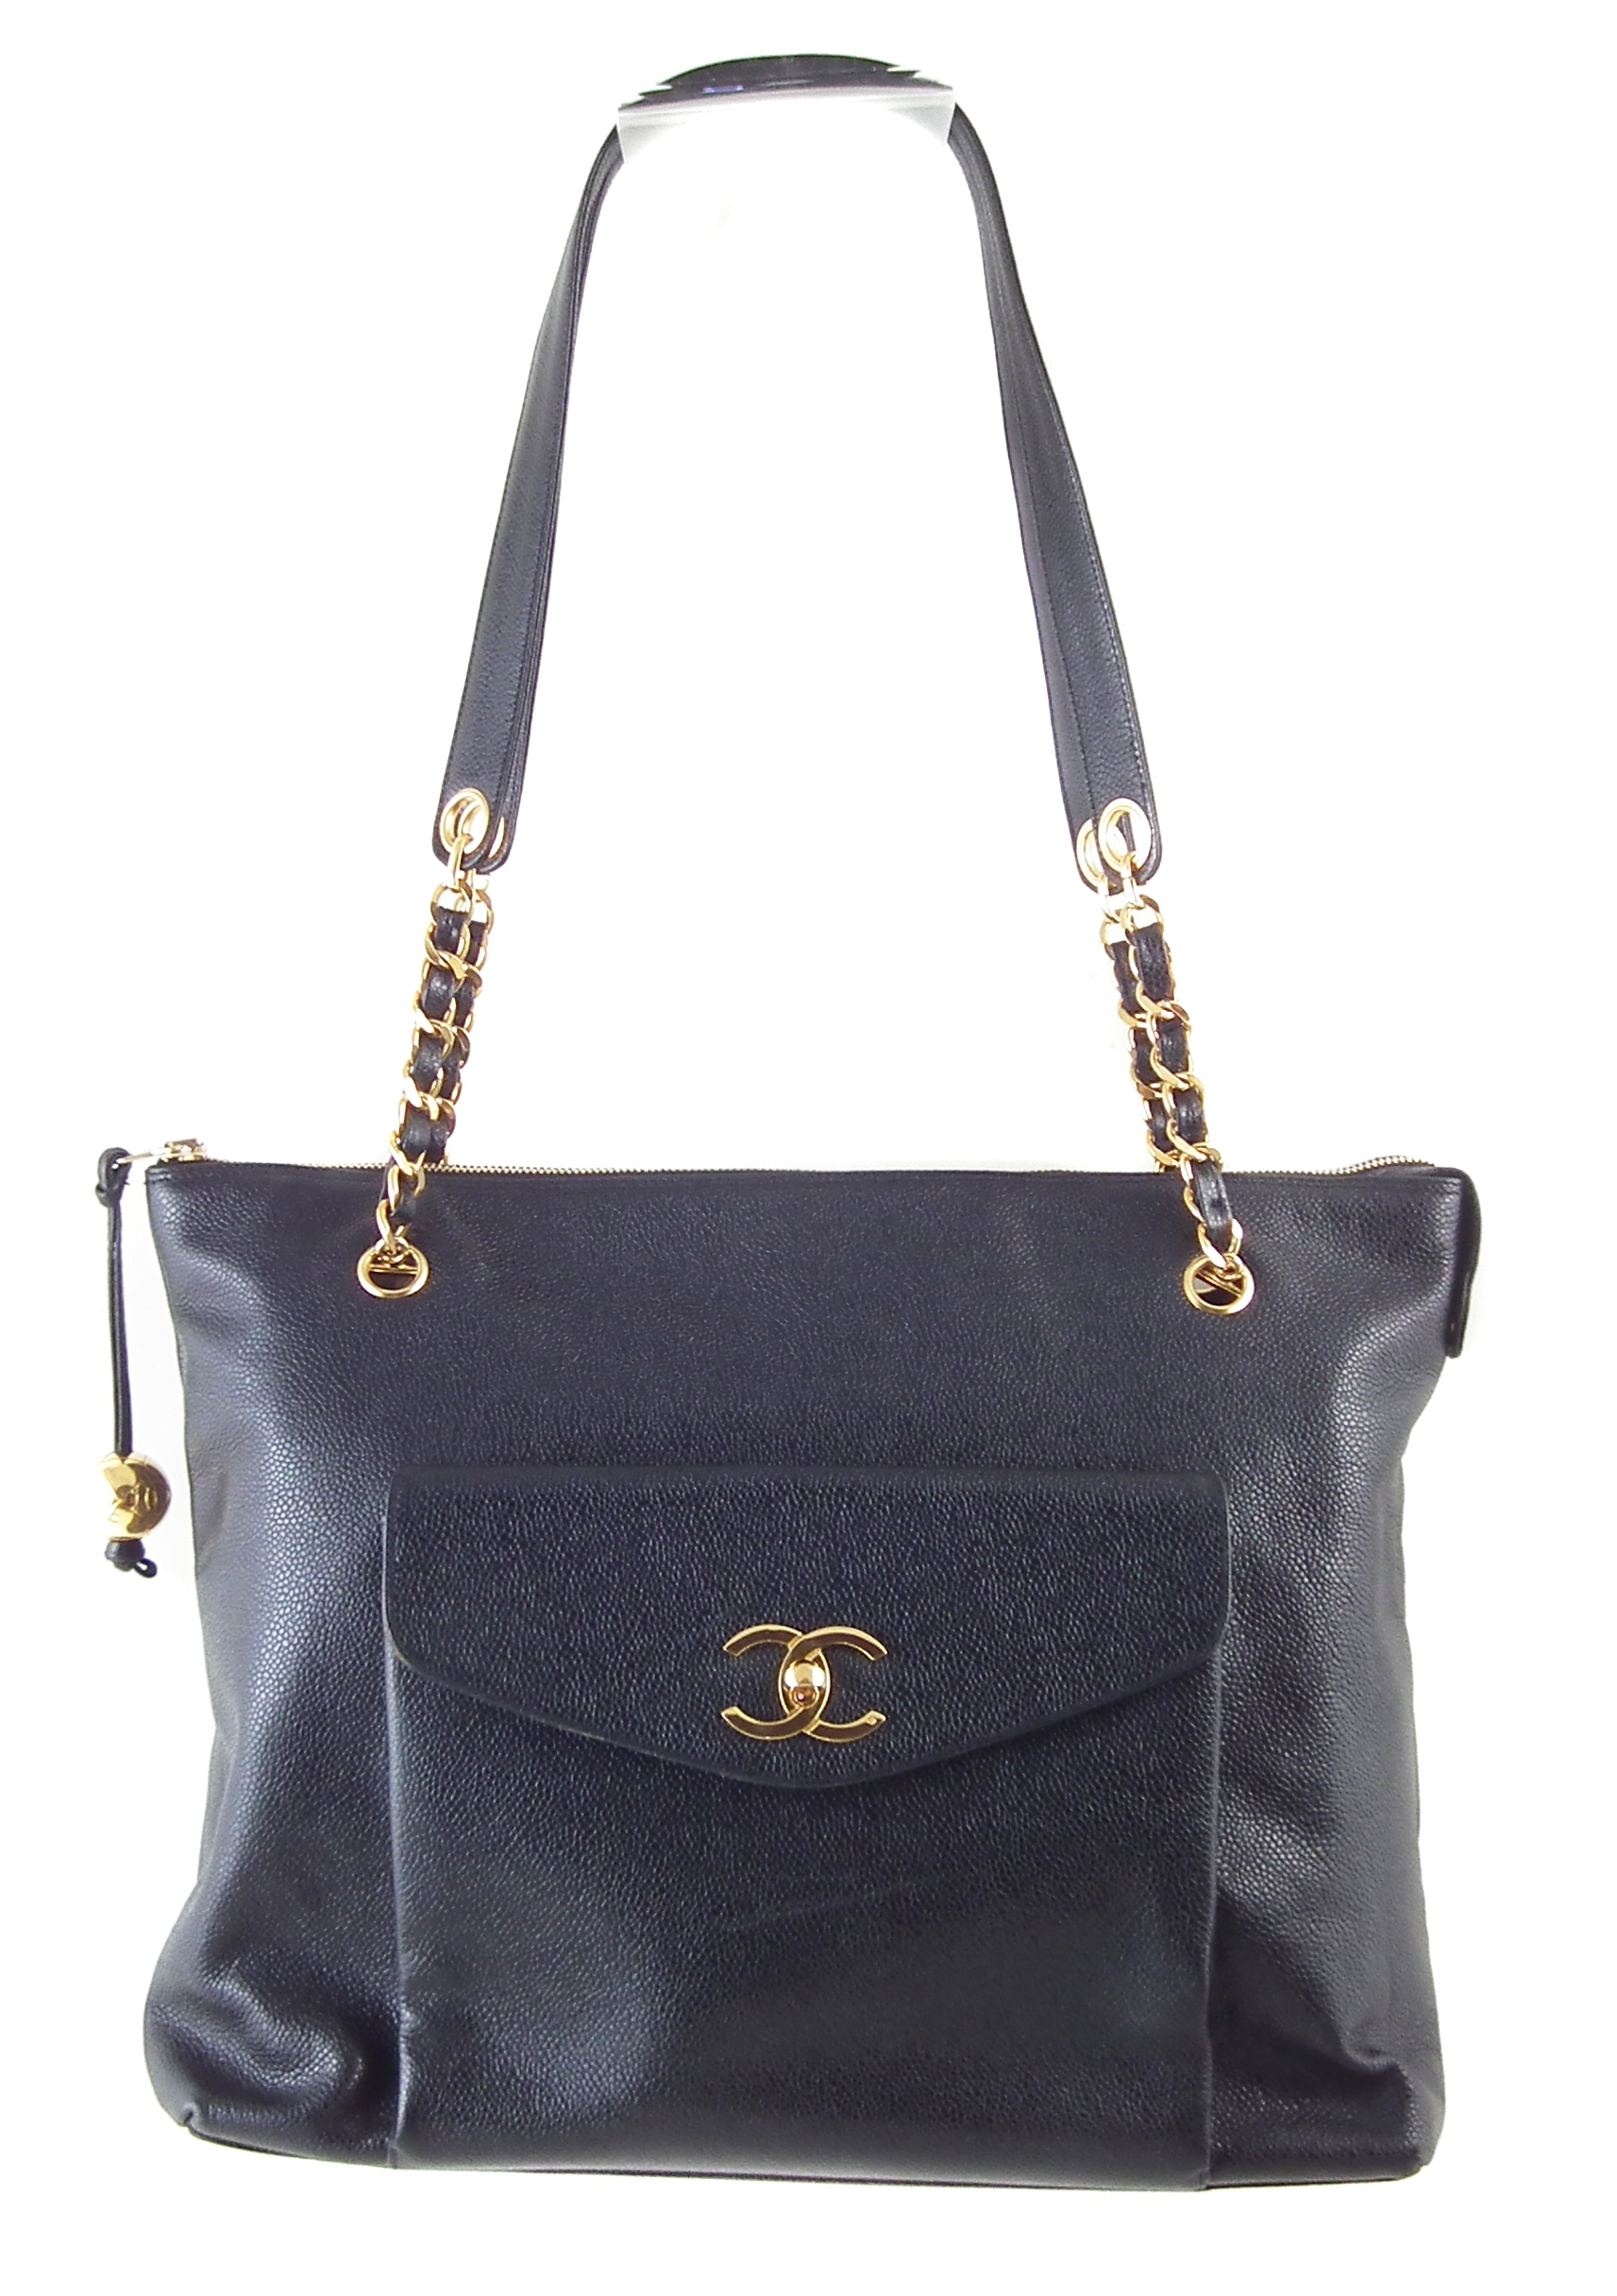 A Chanel CC Turnlock Shopping tote handbag, circa 1991-4, the black caviar leather, with front pocket and gold-tone double 'C' monogram, double woven leather and gold-tone straps with leather shoulder panels, lambskin leather lining, zip compartment, serial number 2896749, with care card and booklet. Dimensions 36 x 30 x 11cm.  36 x 30 x 11cm  Sold for £1,220